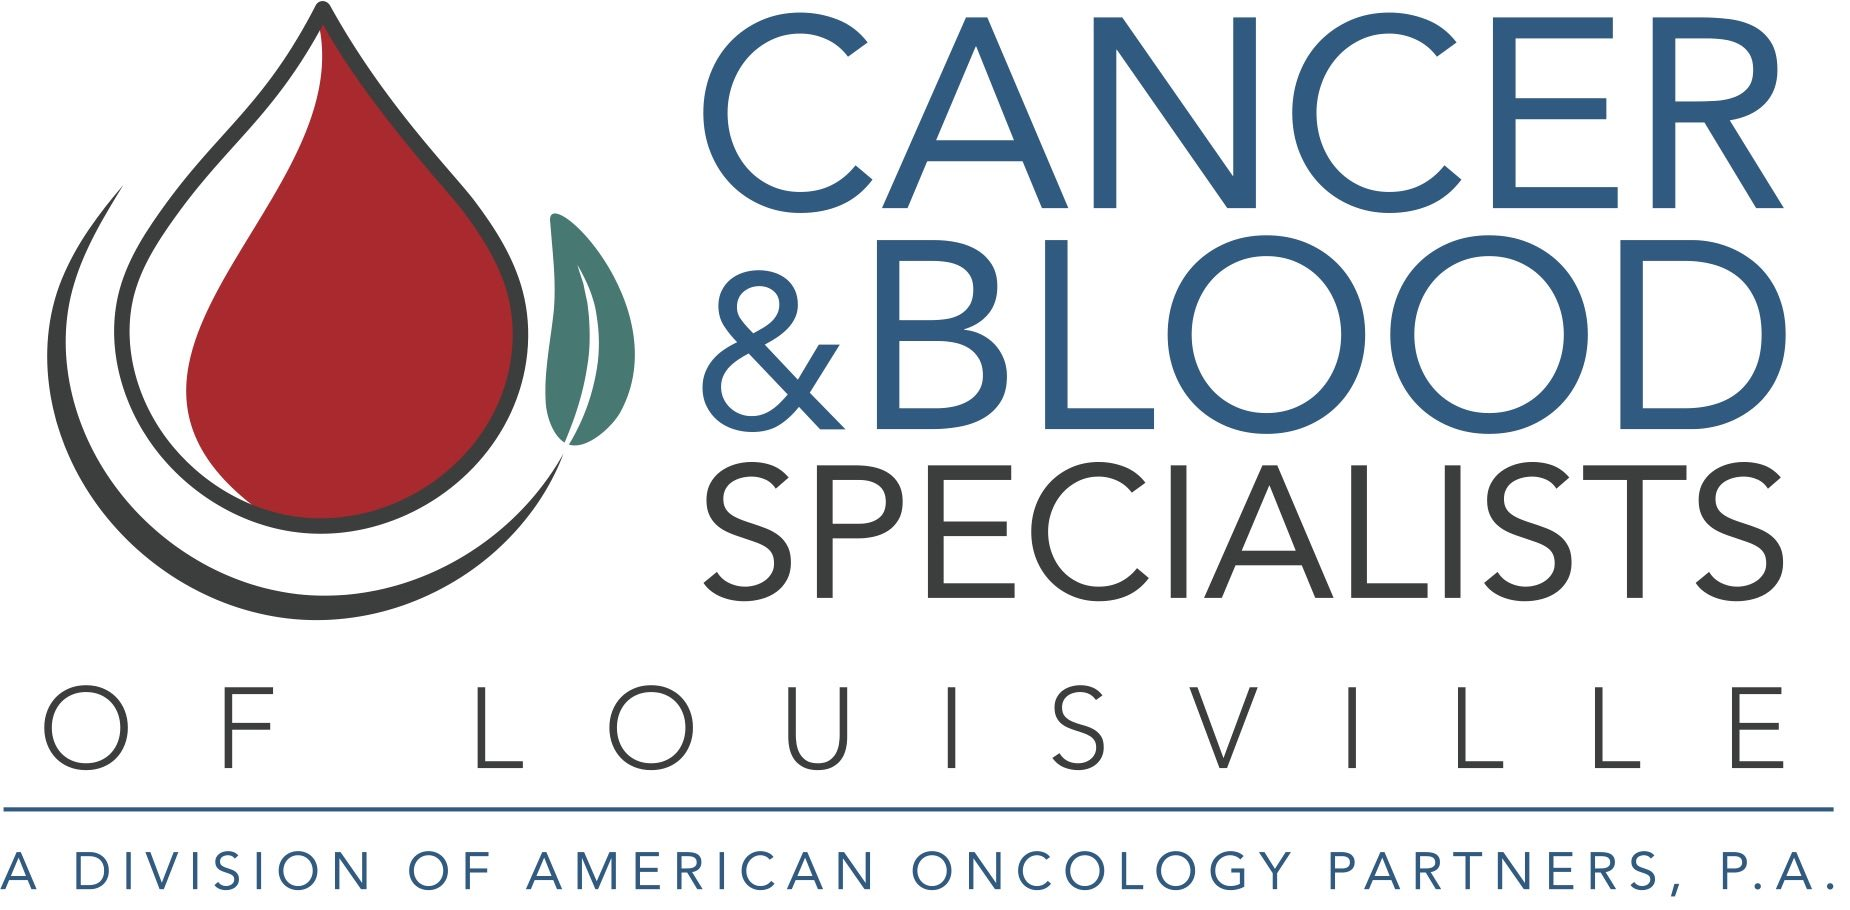 Cancer & Blood Specialists of Louisville